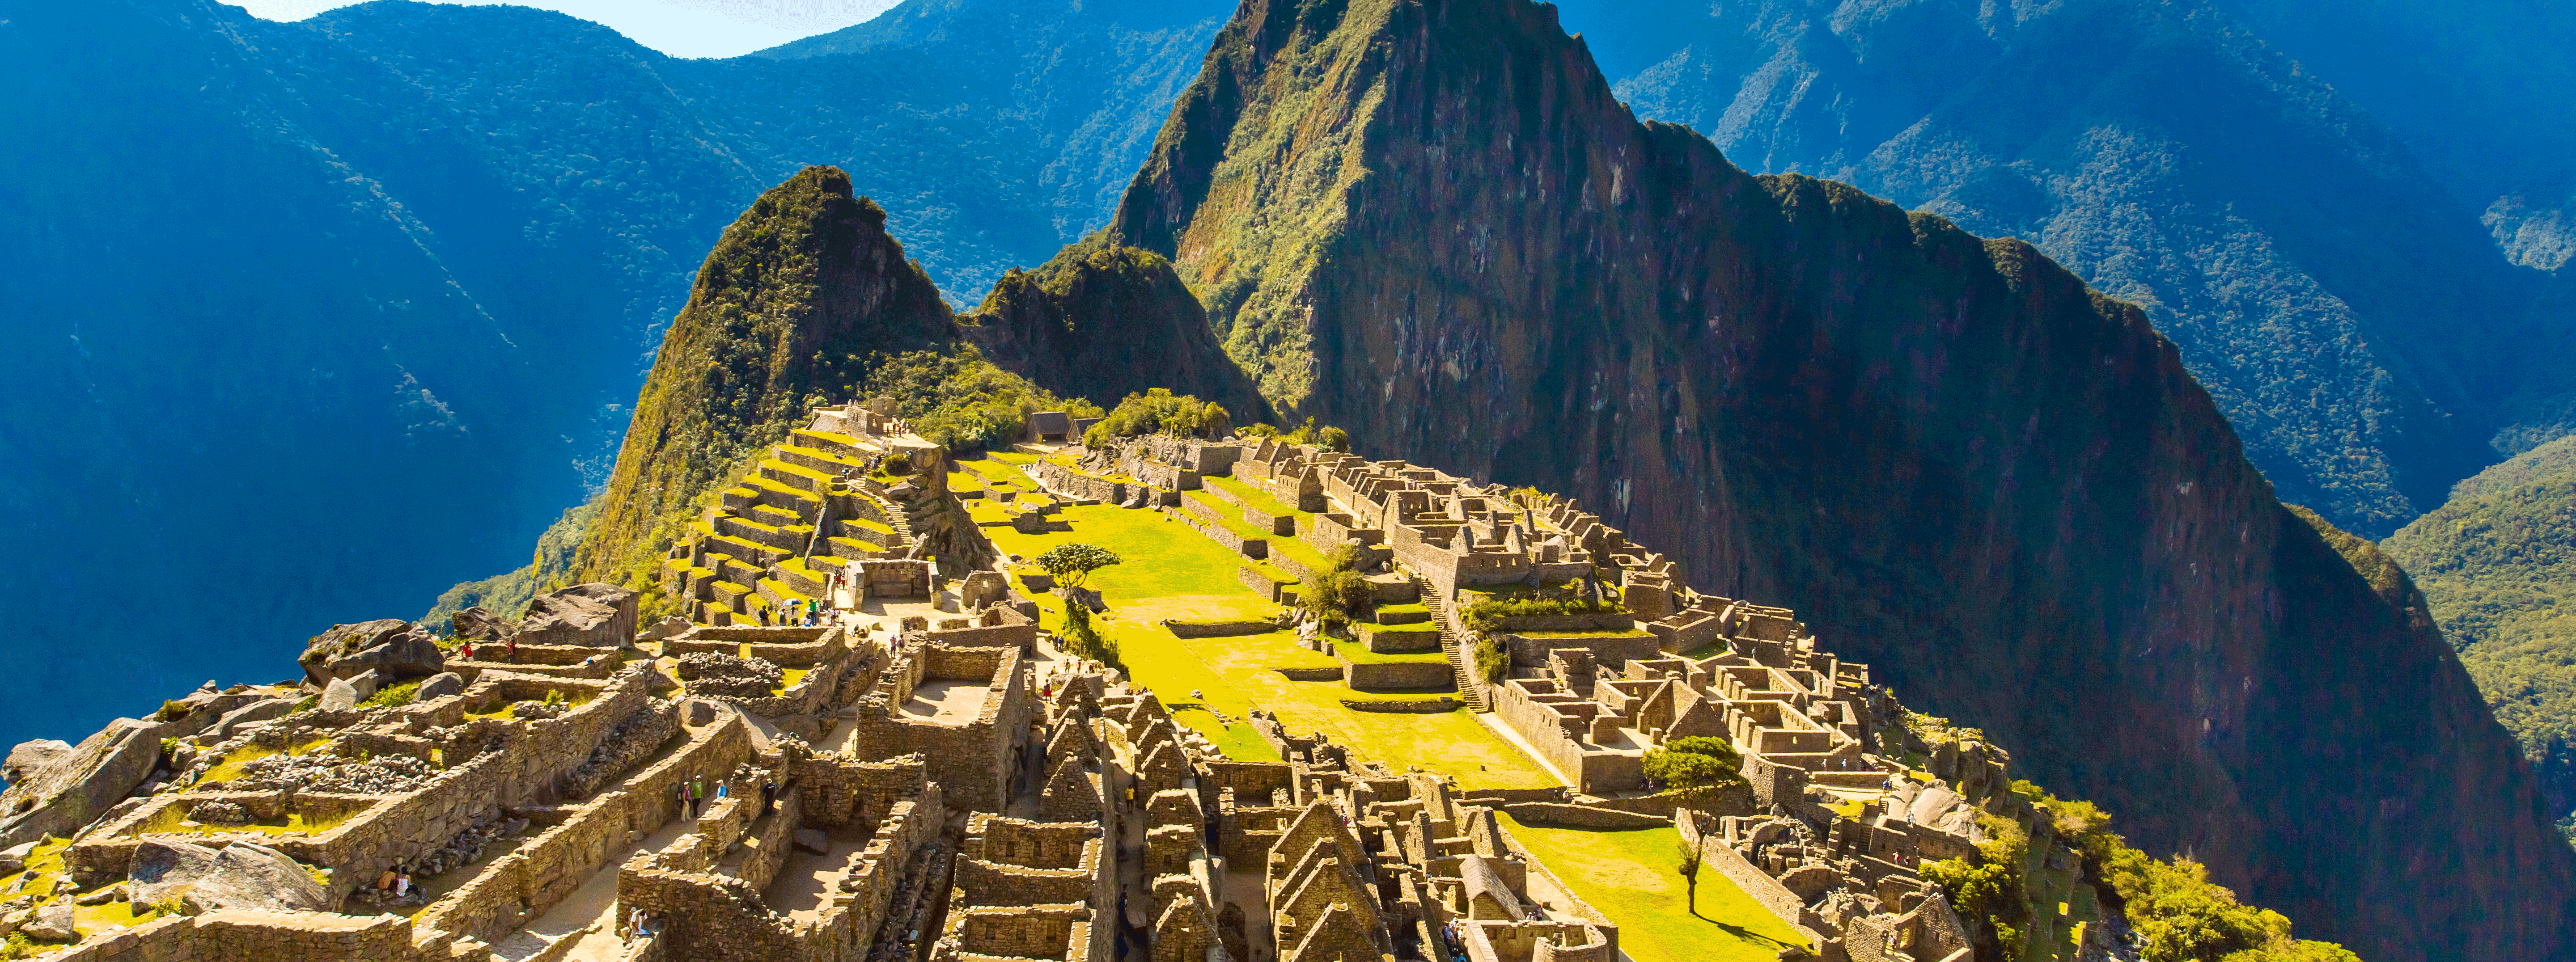 /resource/Images/southamerica/peru/headerimage/Mysterious-city-Machu-Picchu,-Peru.png